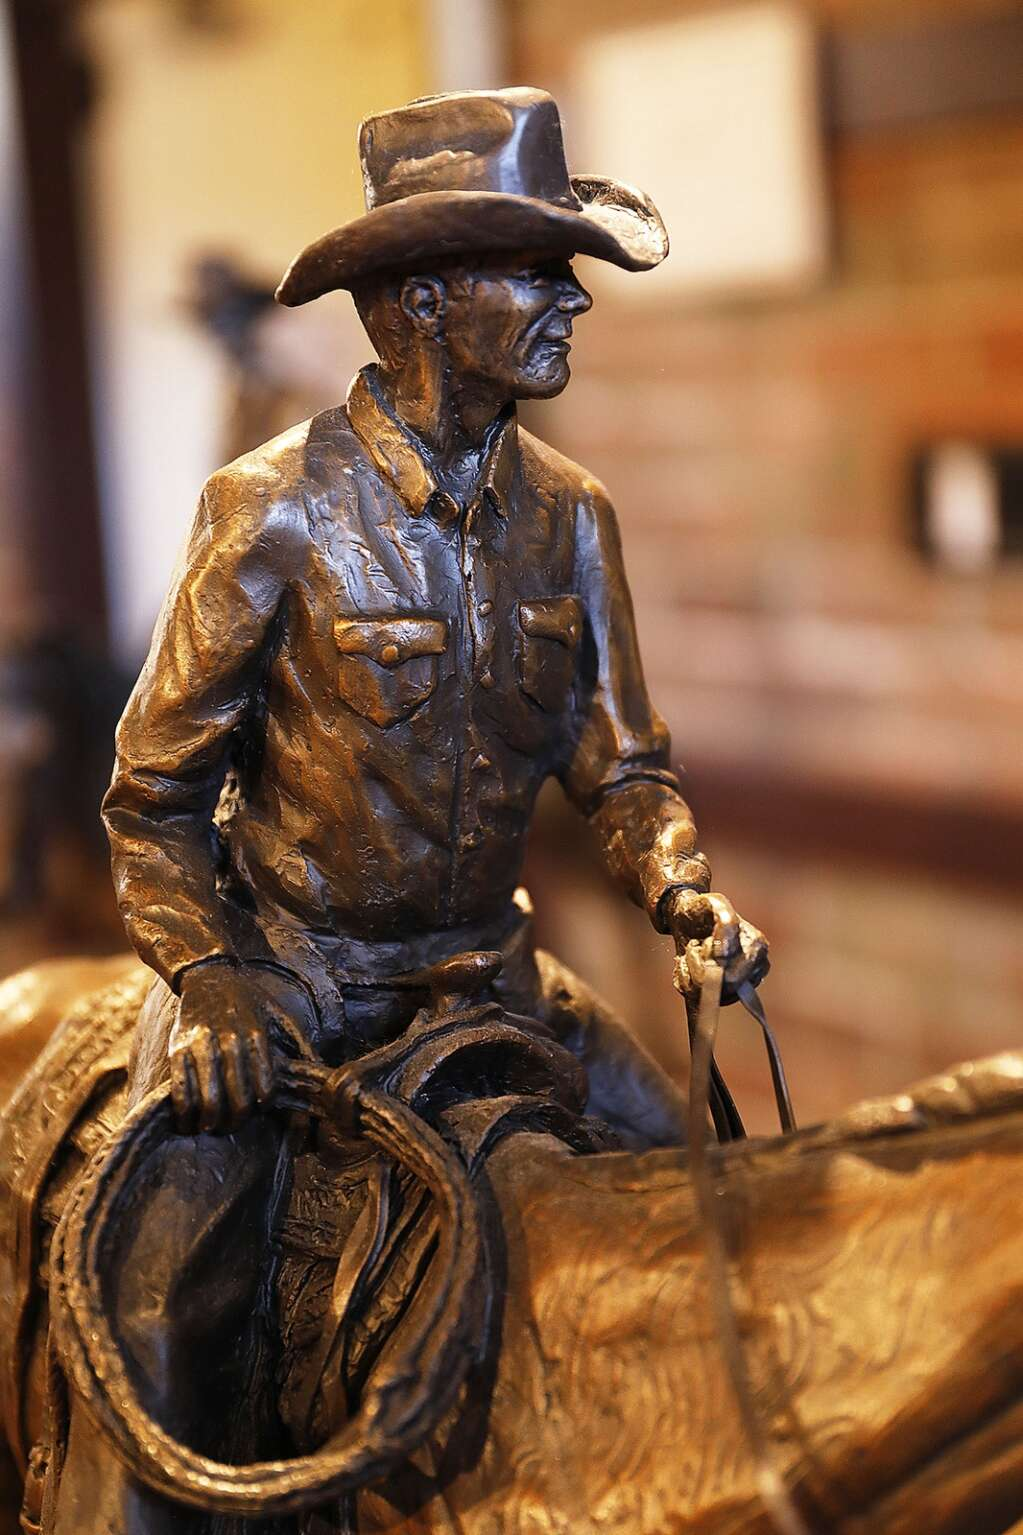 A Curtis Zabel bronze, which will be part of a new exhibit opening at the Depot Art Center for First Friday Artwalk, reflects the artist's love of cowboys and ranching. (Photo by John F. Russell)